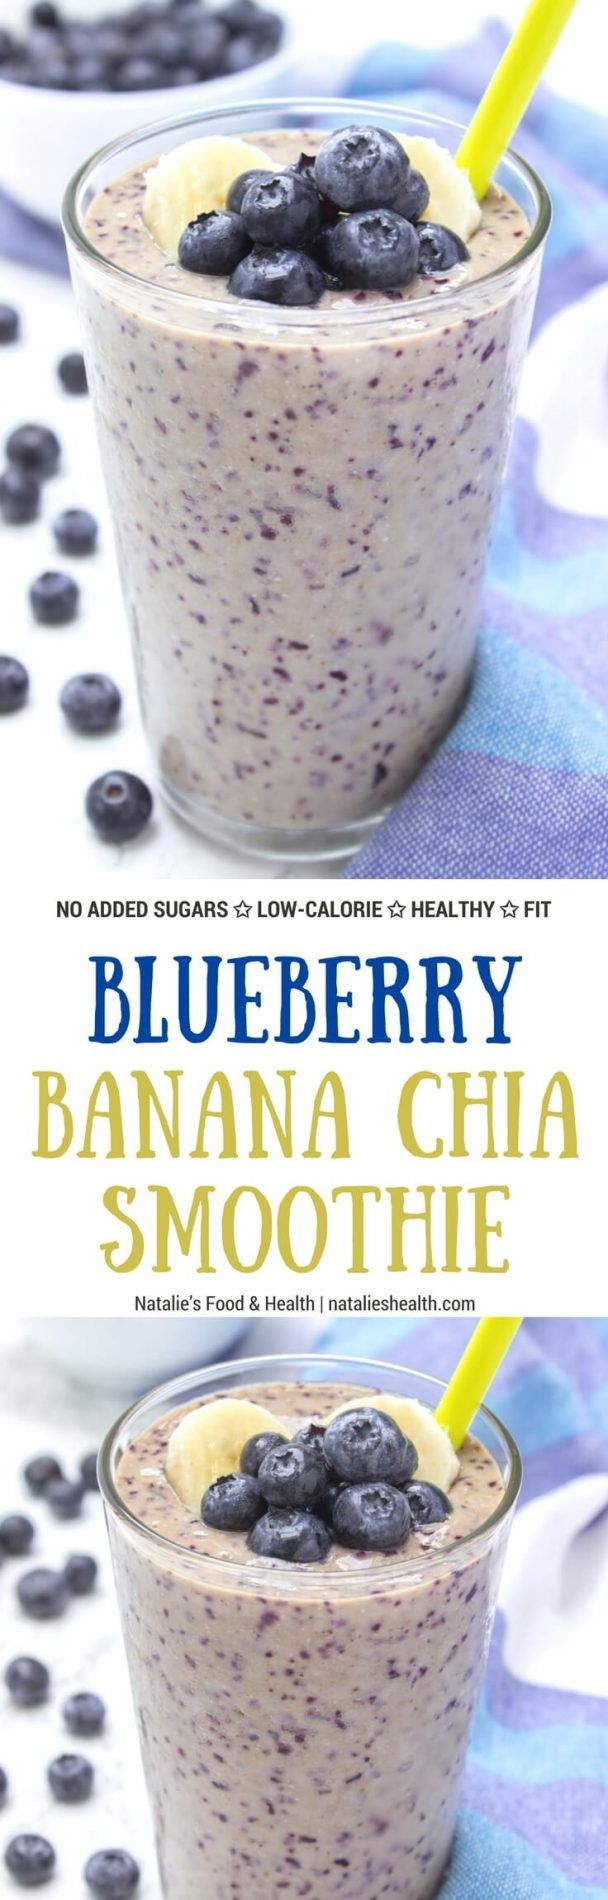 Blueberry Banana Chia Smoothie is the ultimate morning breakfast smoothie! It's HEALTHY, deliciously creamy and SO satisfying + refined sugar-free and packed with nutrients and powerful antioxidants. #smoothie #summer #fit #workout #sugarfree #healthy #kidsfriendly #whole30 #weightloss #skinny #lowcalorie | natalieshealth.com